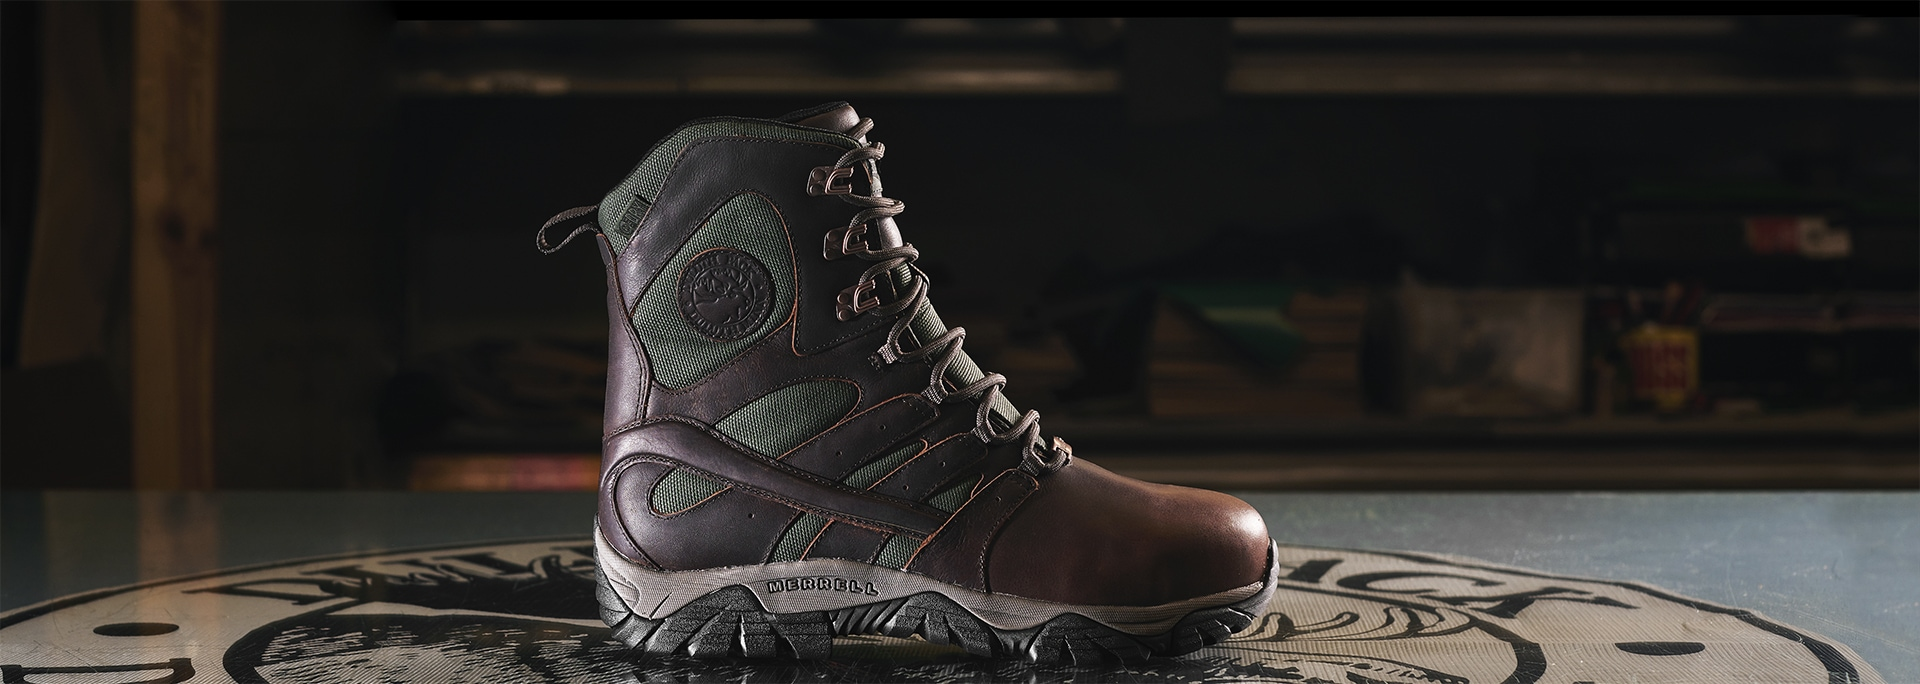 Merrell X Duluth Pack, Limited Edition